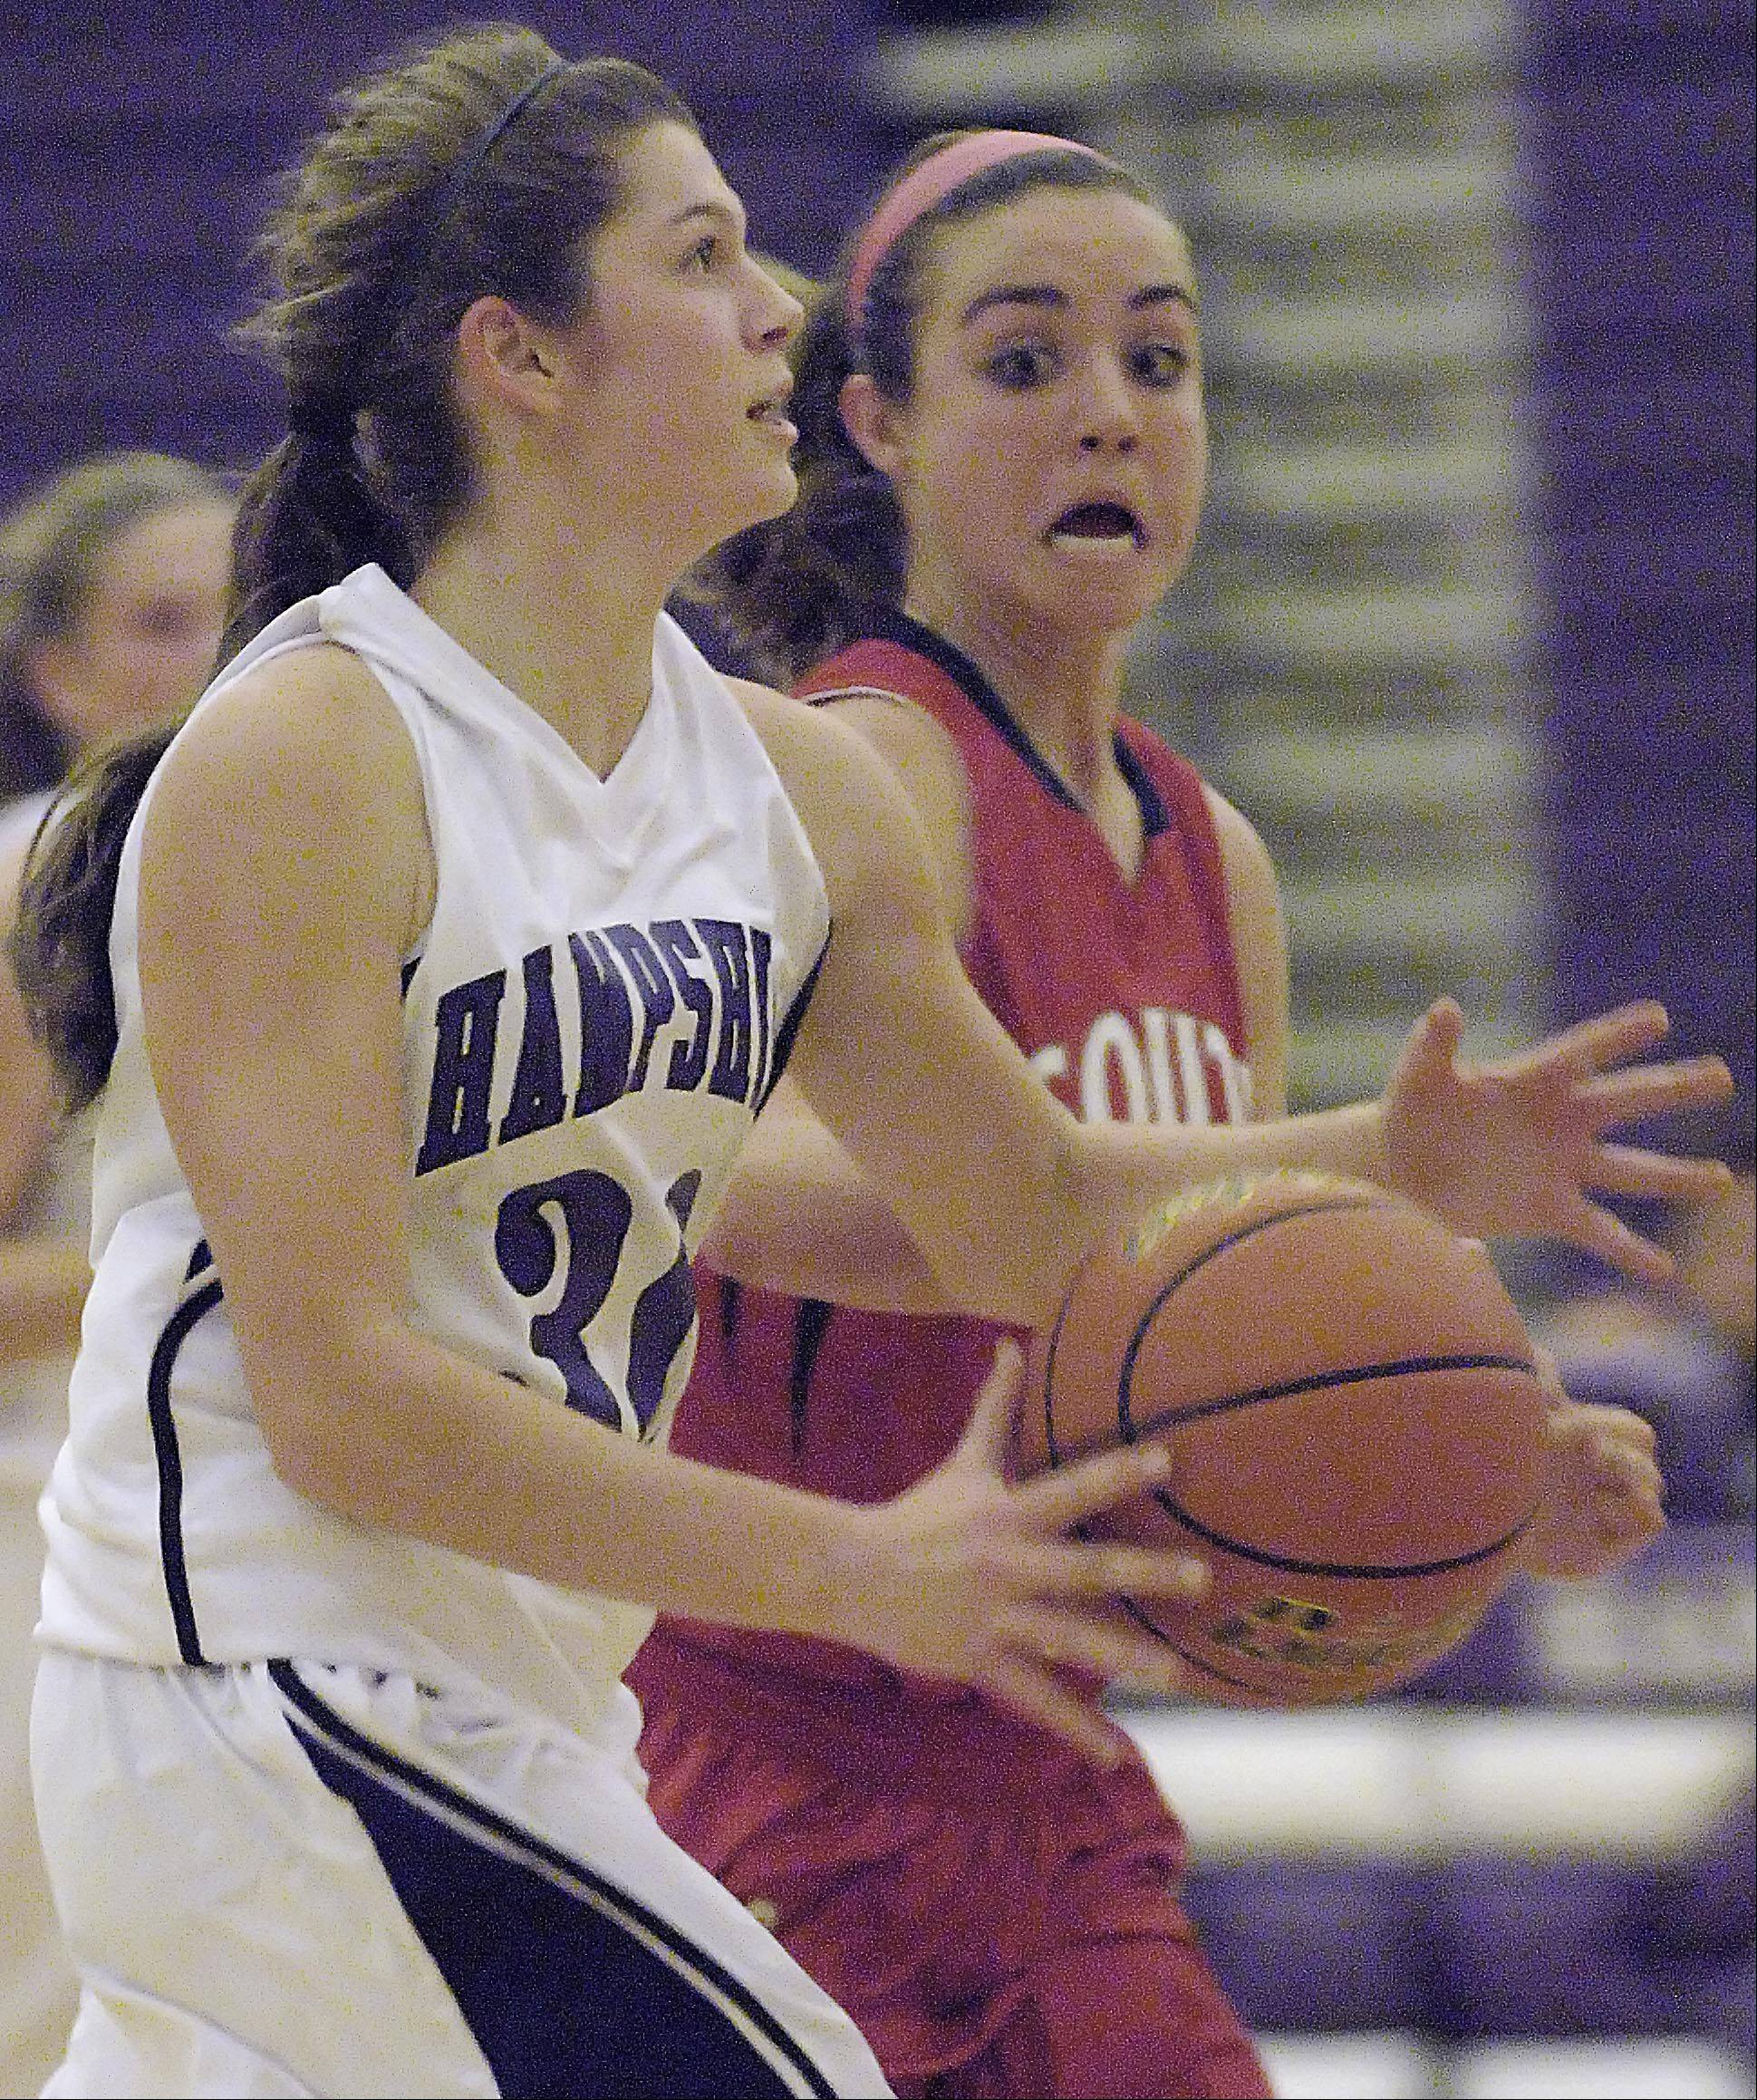 South Elgin's Delaney Kelleher keeps an eye of the ball as Hampshire's Jen Dumoulin drives to the basket Wednesday in Hampshire.